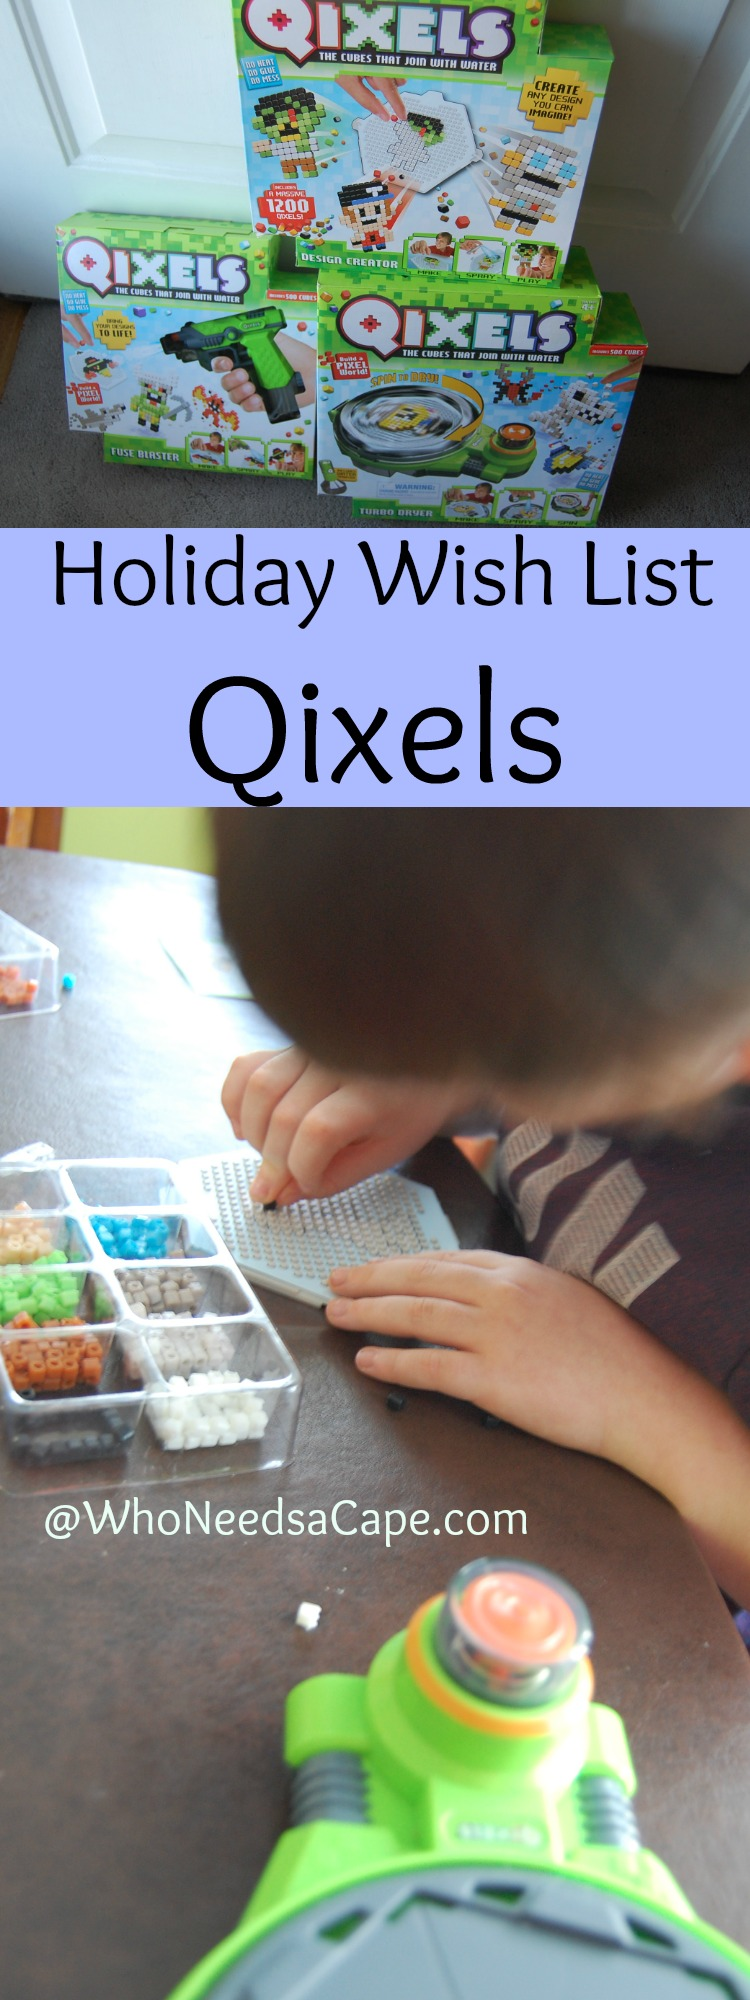 Holiday Wish List with Qixels